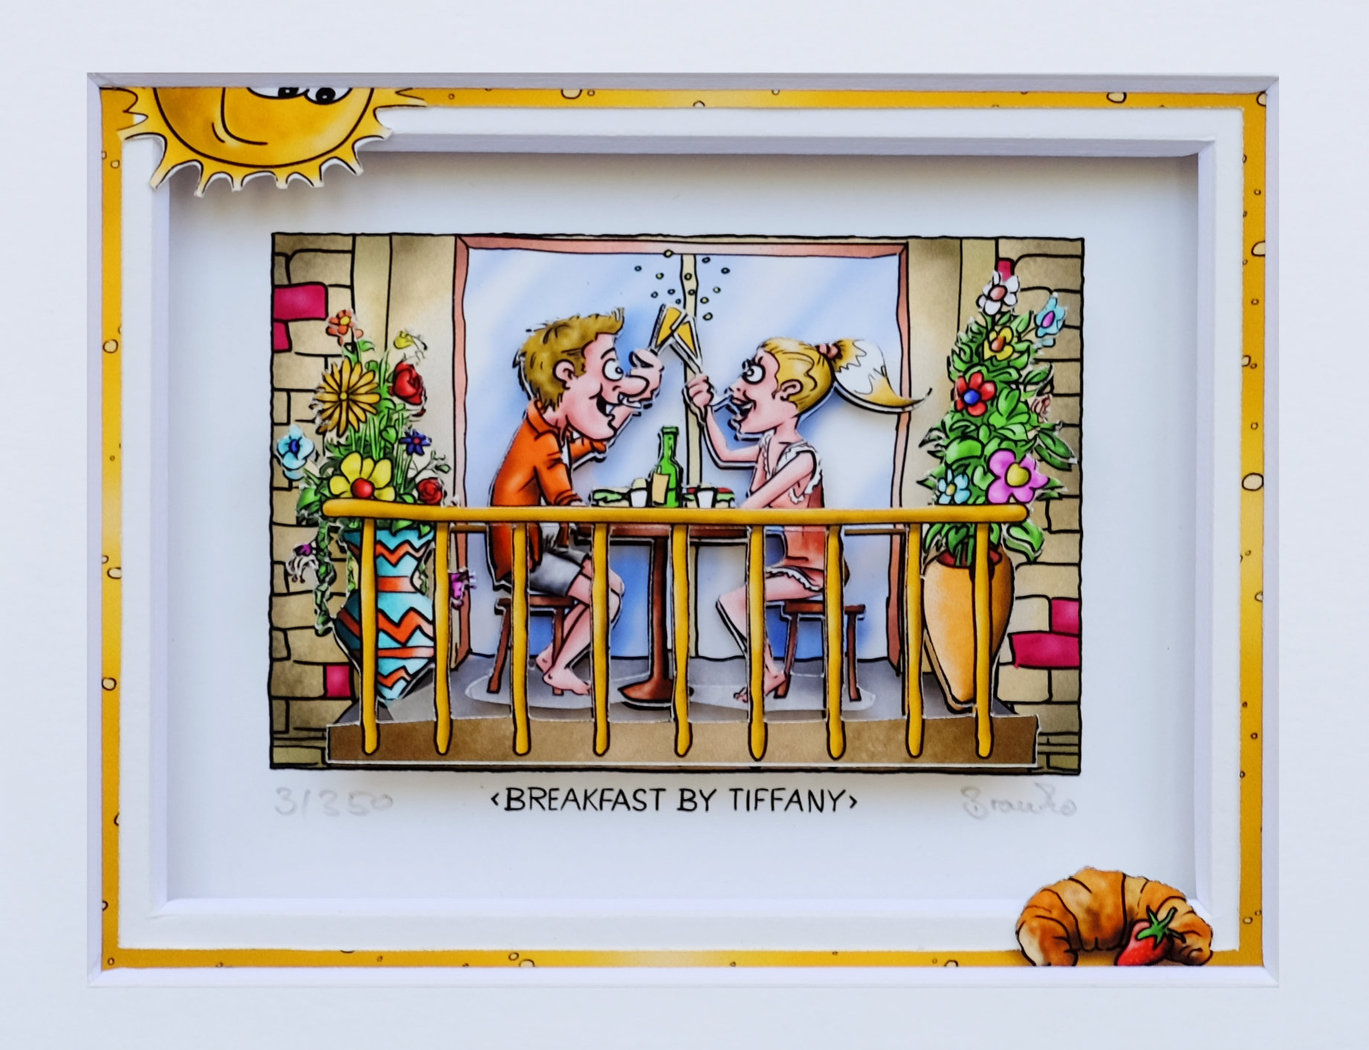 Branko - BREAKFAST BY TIFFANY